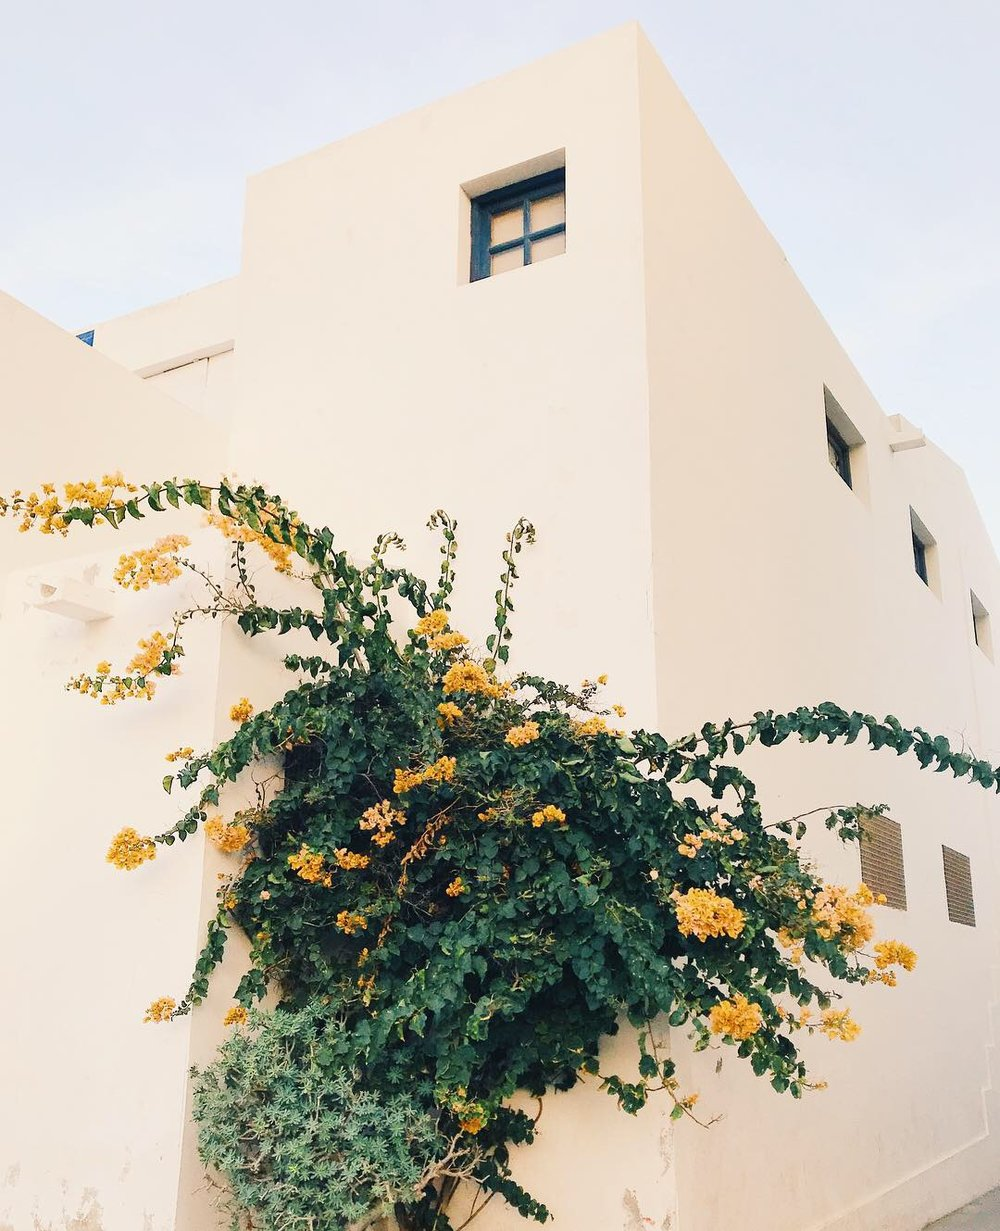 A plant grows from the closed market building in the centre of Corralejo, Fuerteventura